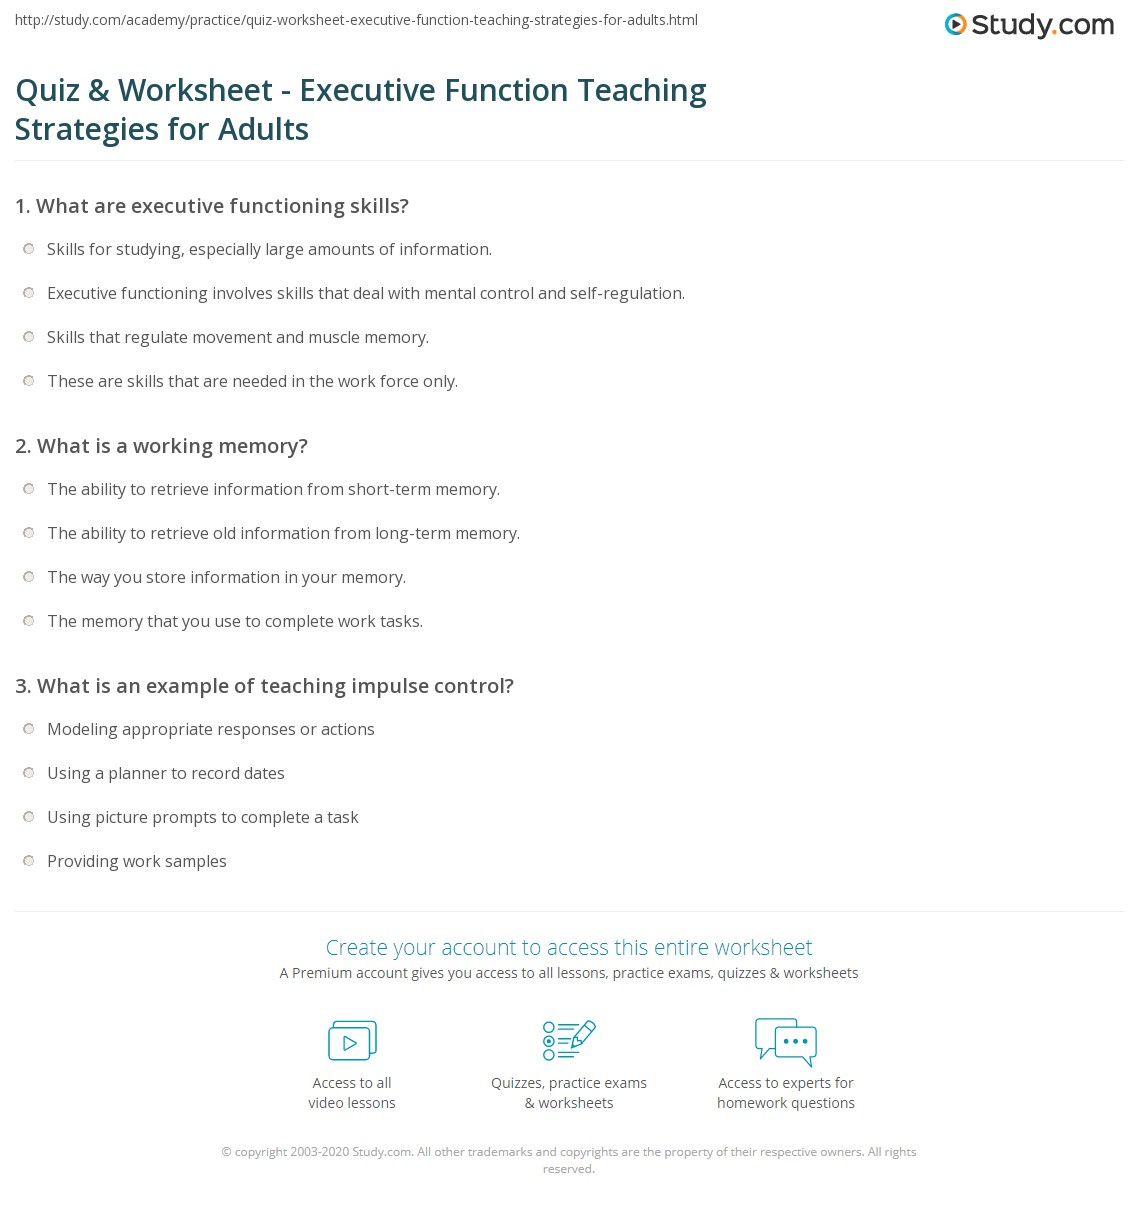 Executive functioning strategies for adults